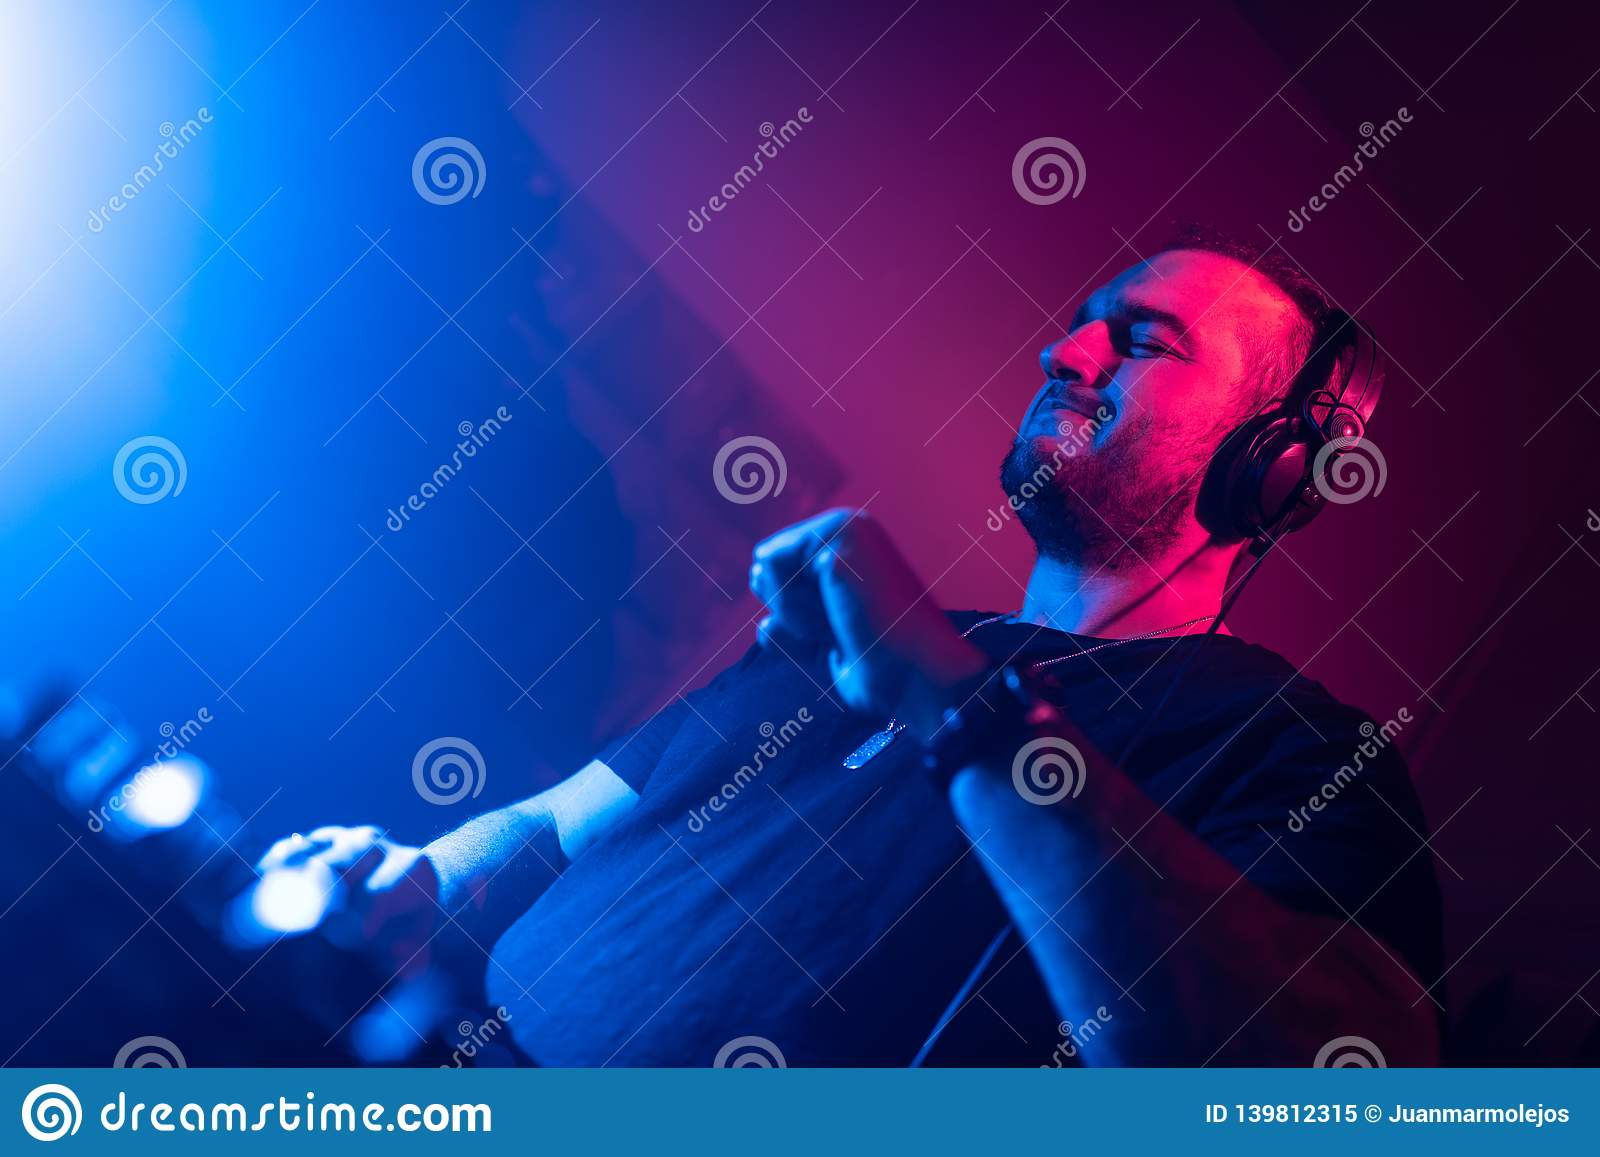 DJ Playing House And Techno Music In A Night Club  Mixing